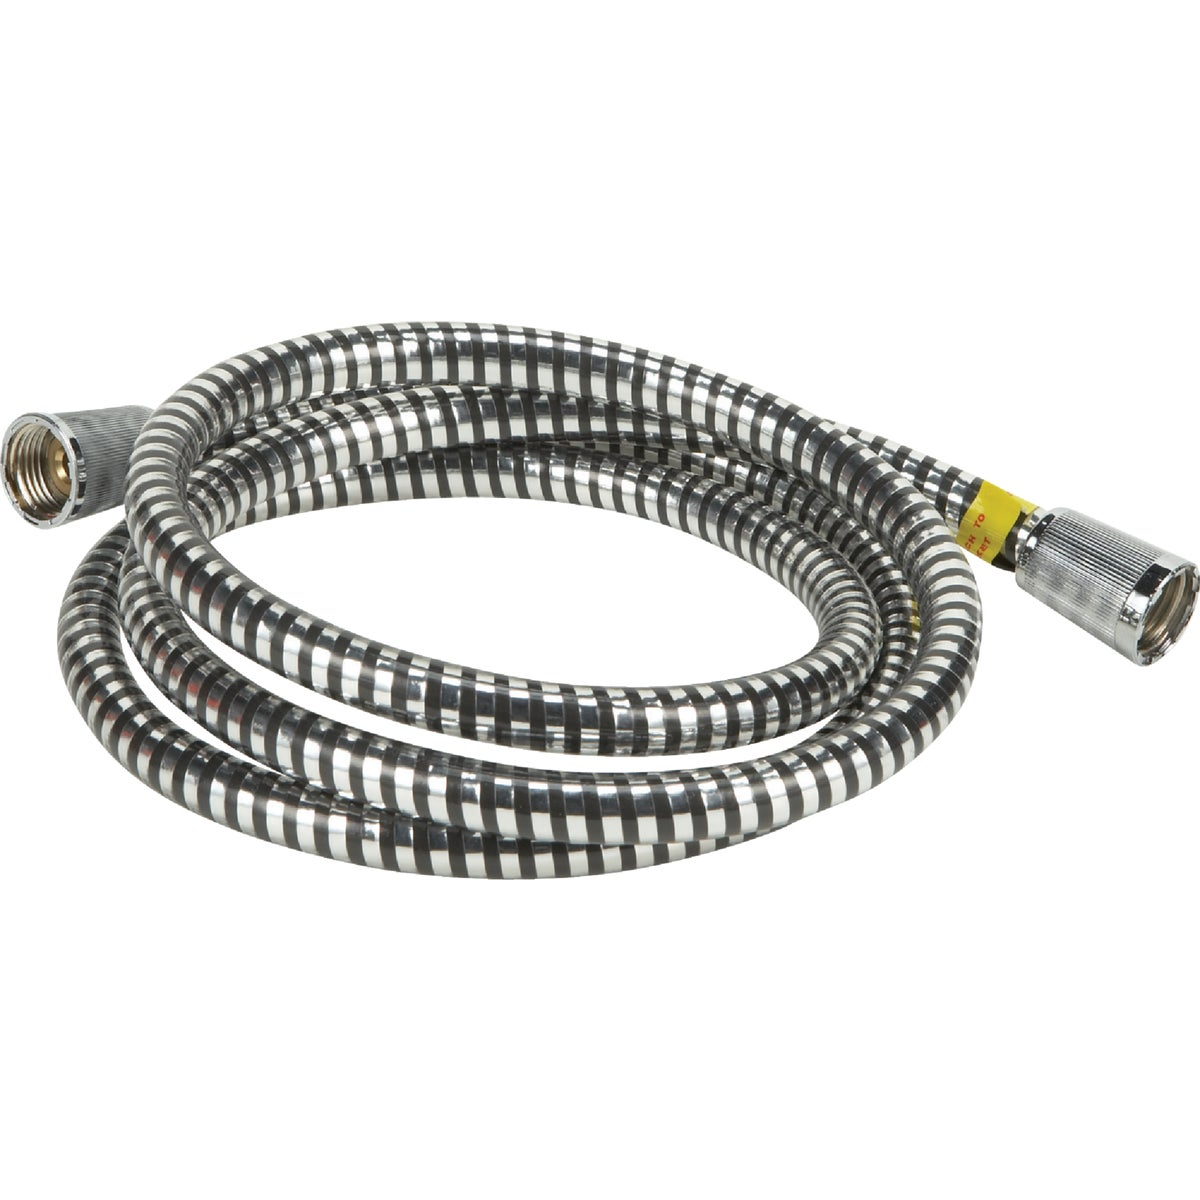 6' MYLAR/CHR SHOWER HOSE